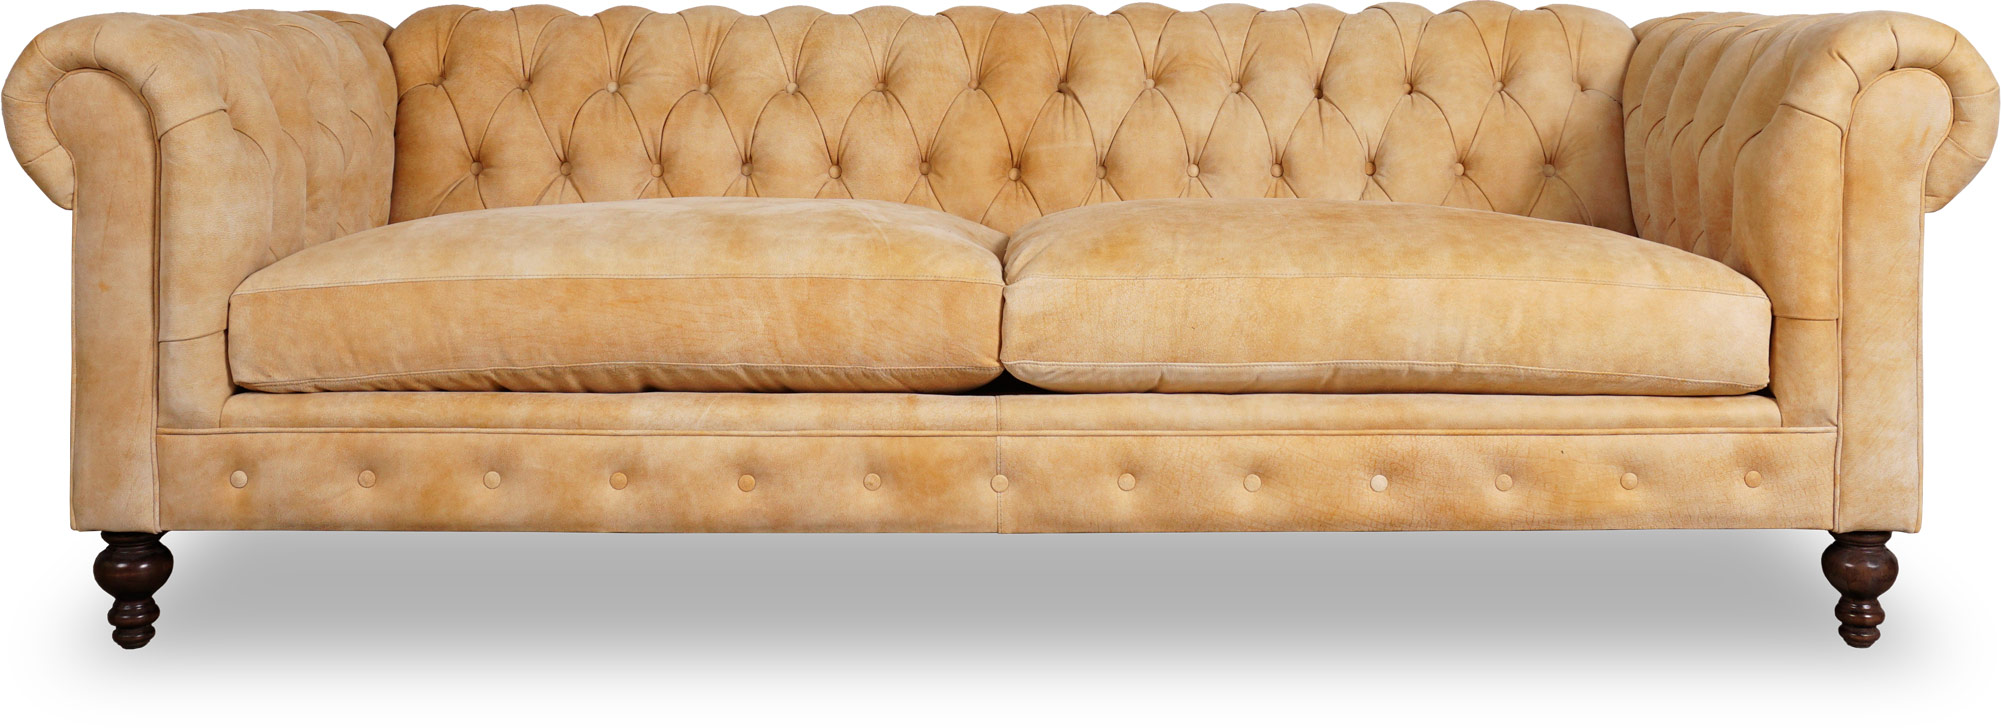 Express Furniture Higgins Leather Chesterfield Sofa Roger Chris